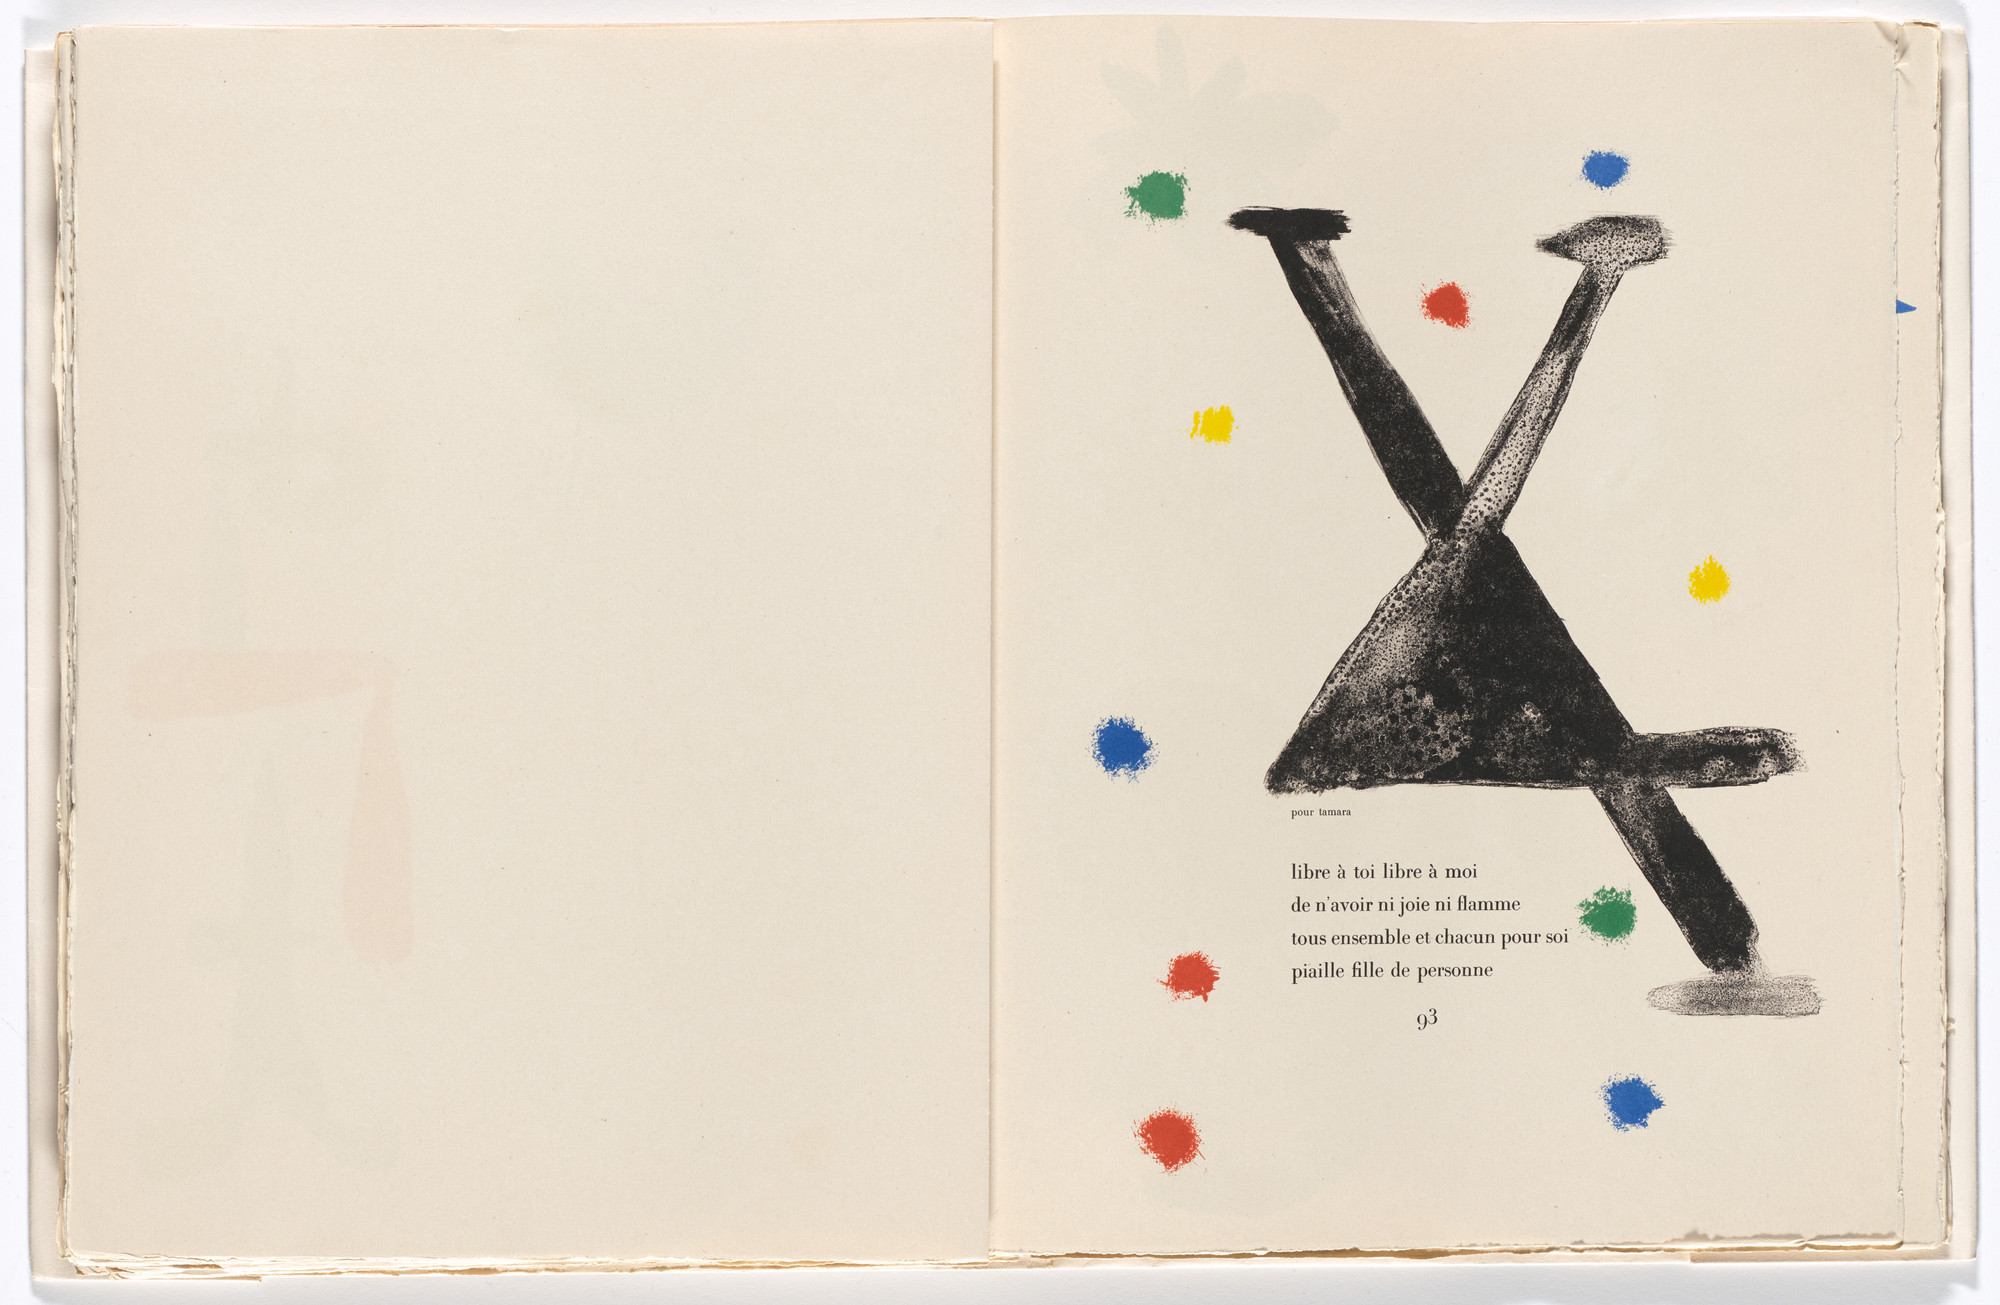 Joan Miró. In-text plate (page 93) from Parler seul (Speaking Alone). 1948–50, published 1950